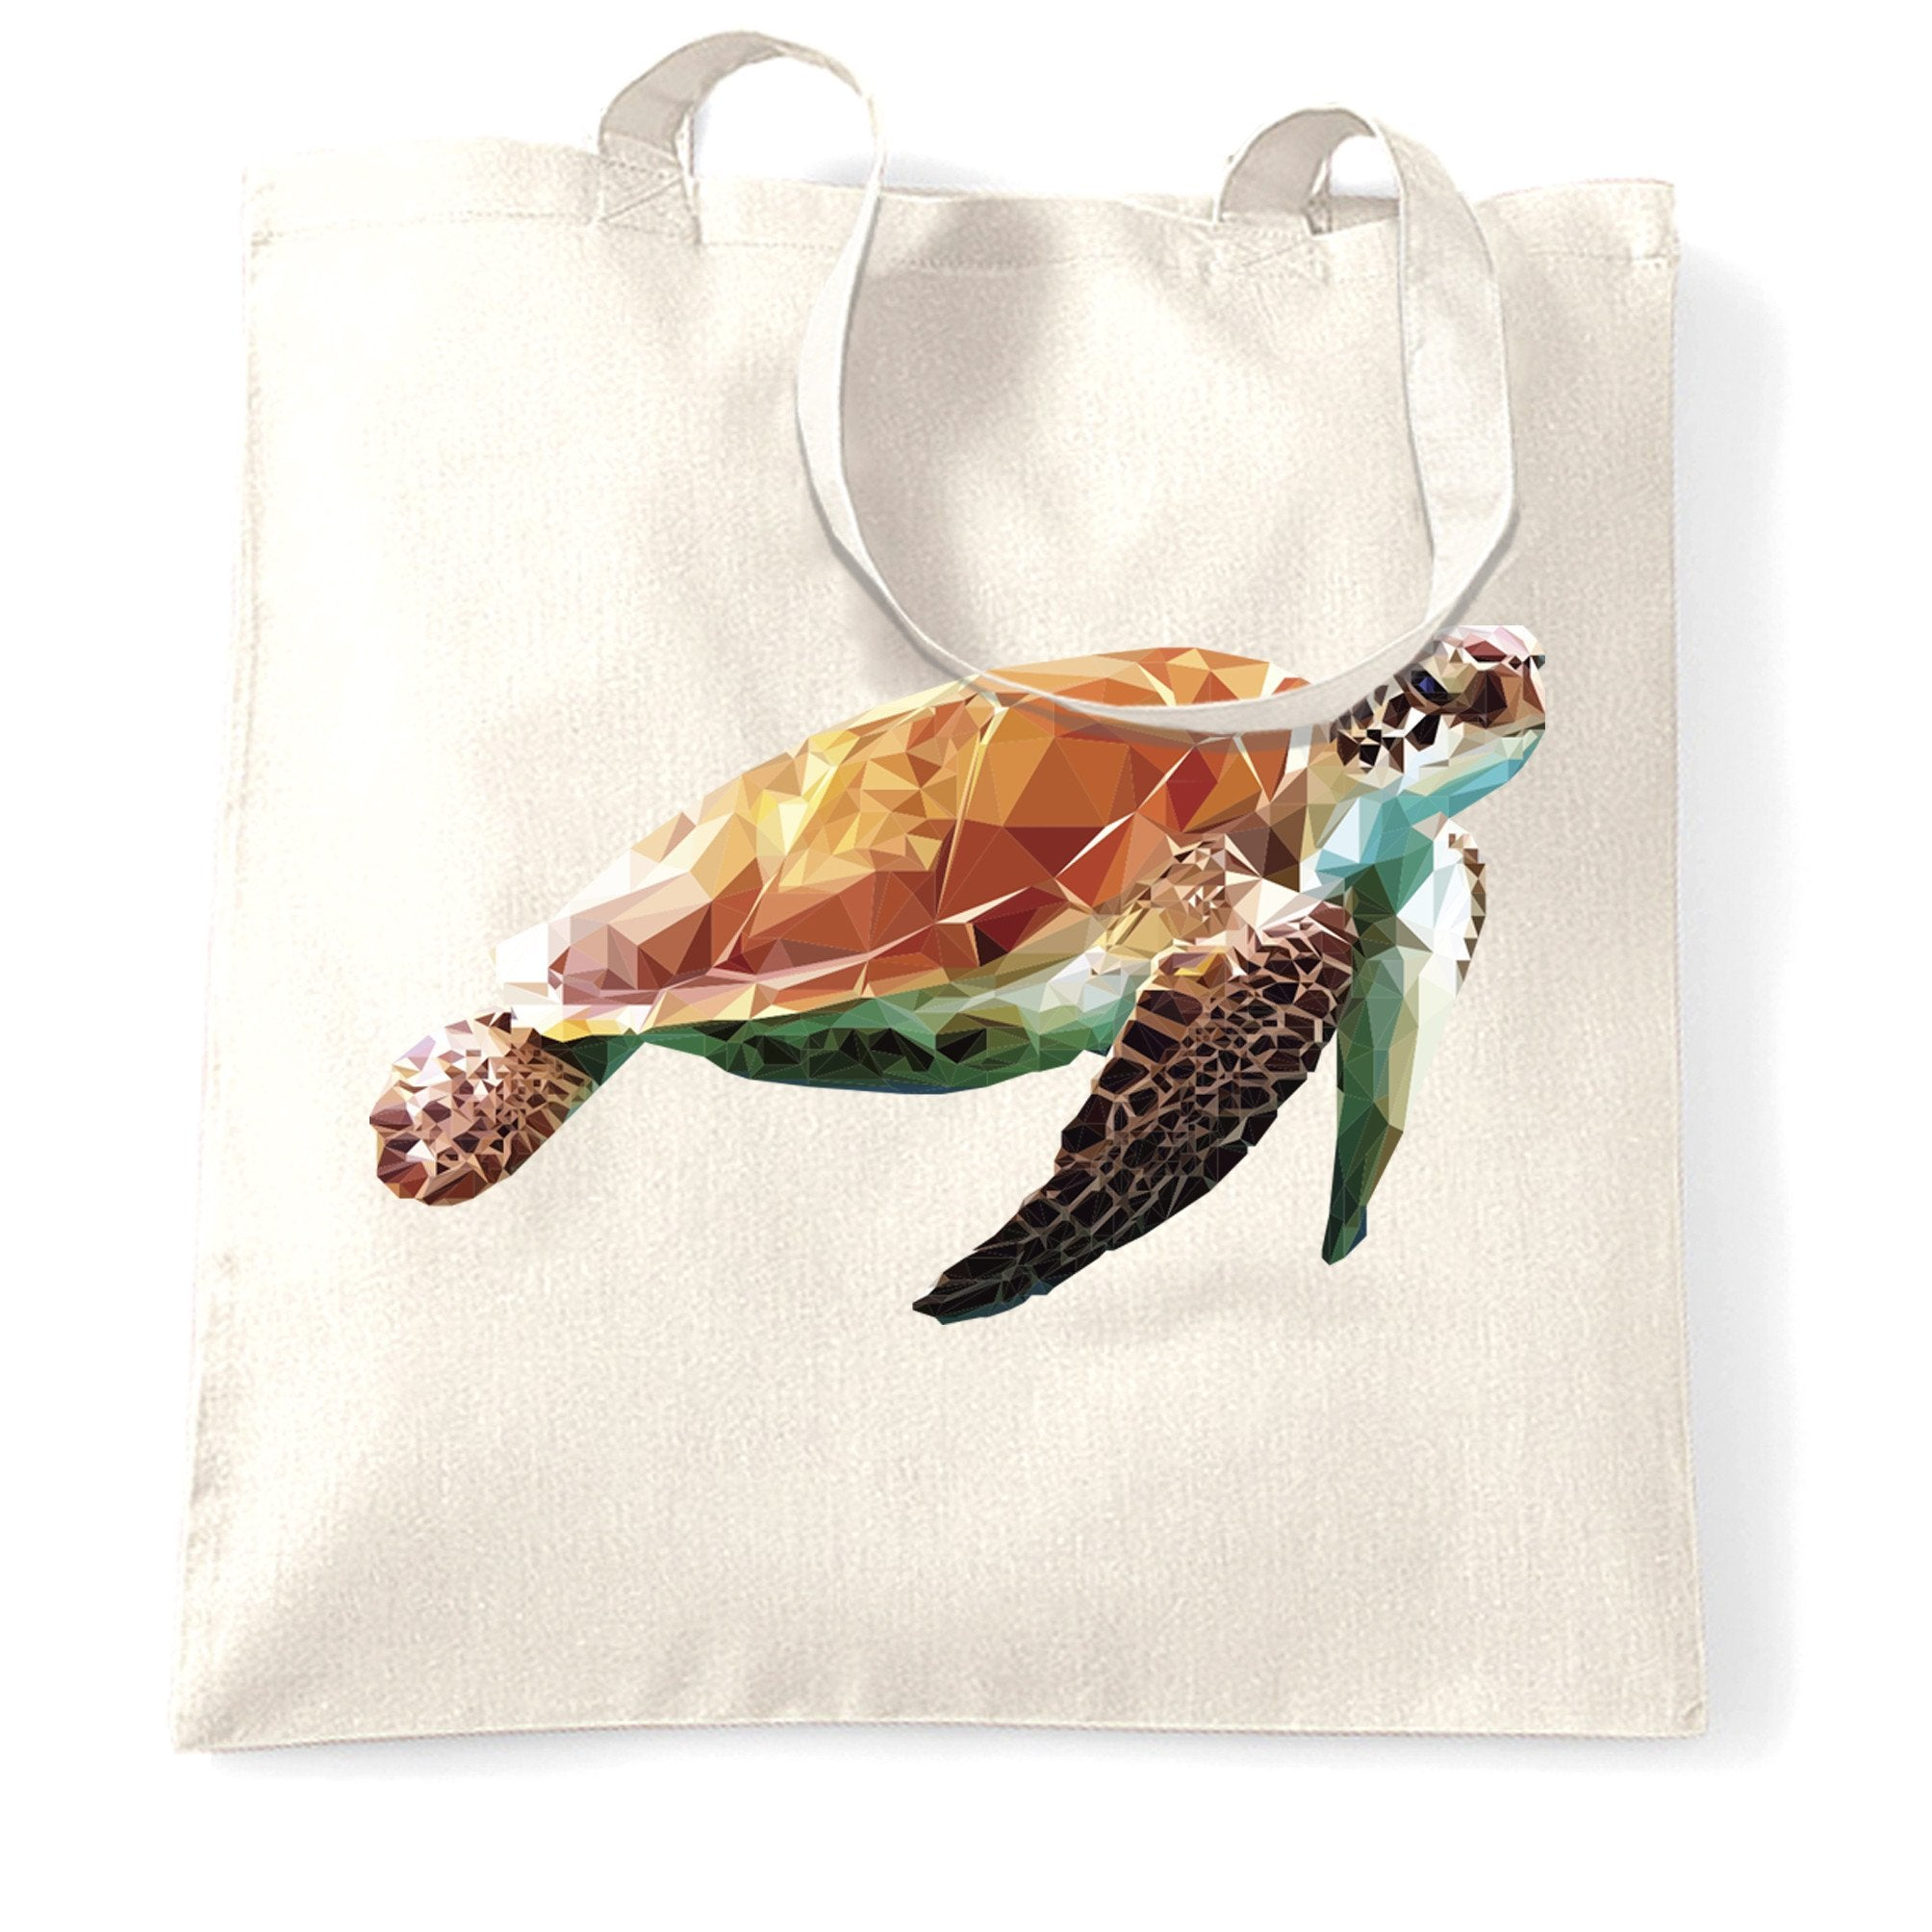 Sea Life Art Tote Bag Low Poly Turtle Graphic